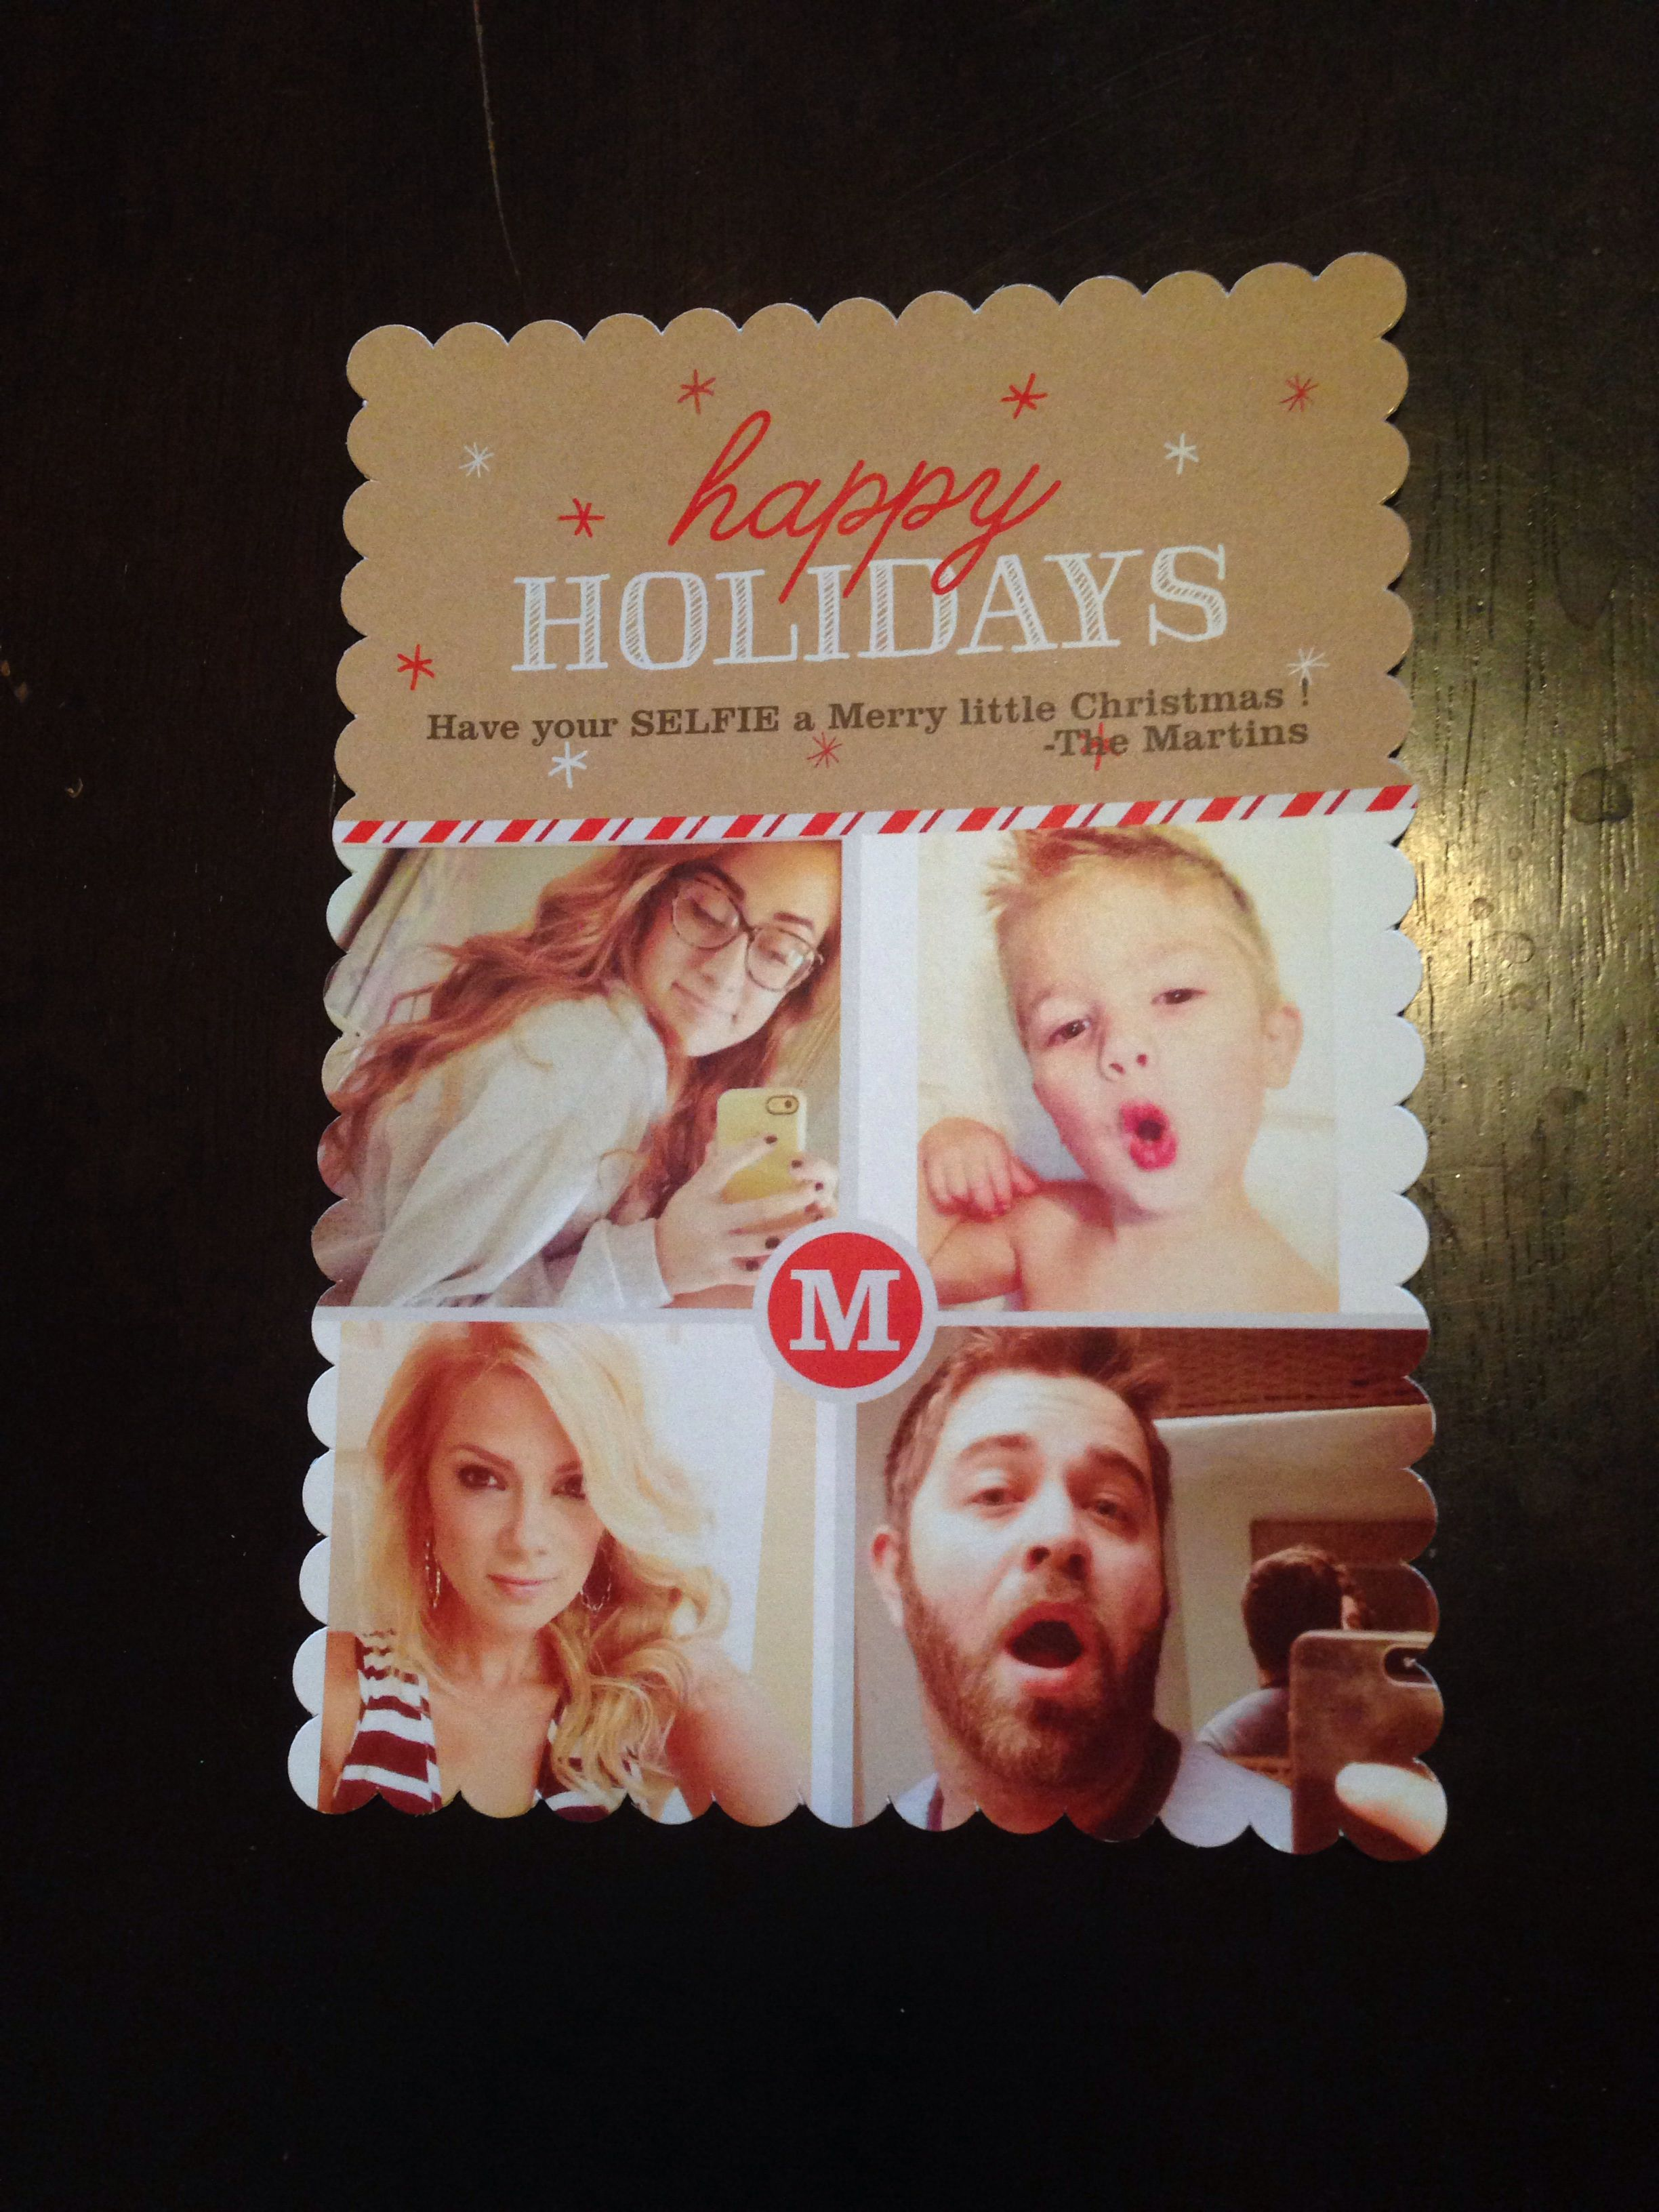 Last years Christmas card. Have your Selfie a merry little Christmas ...